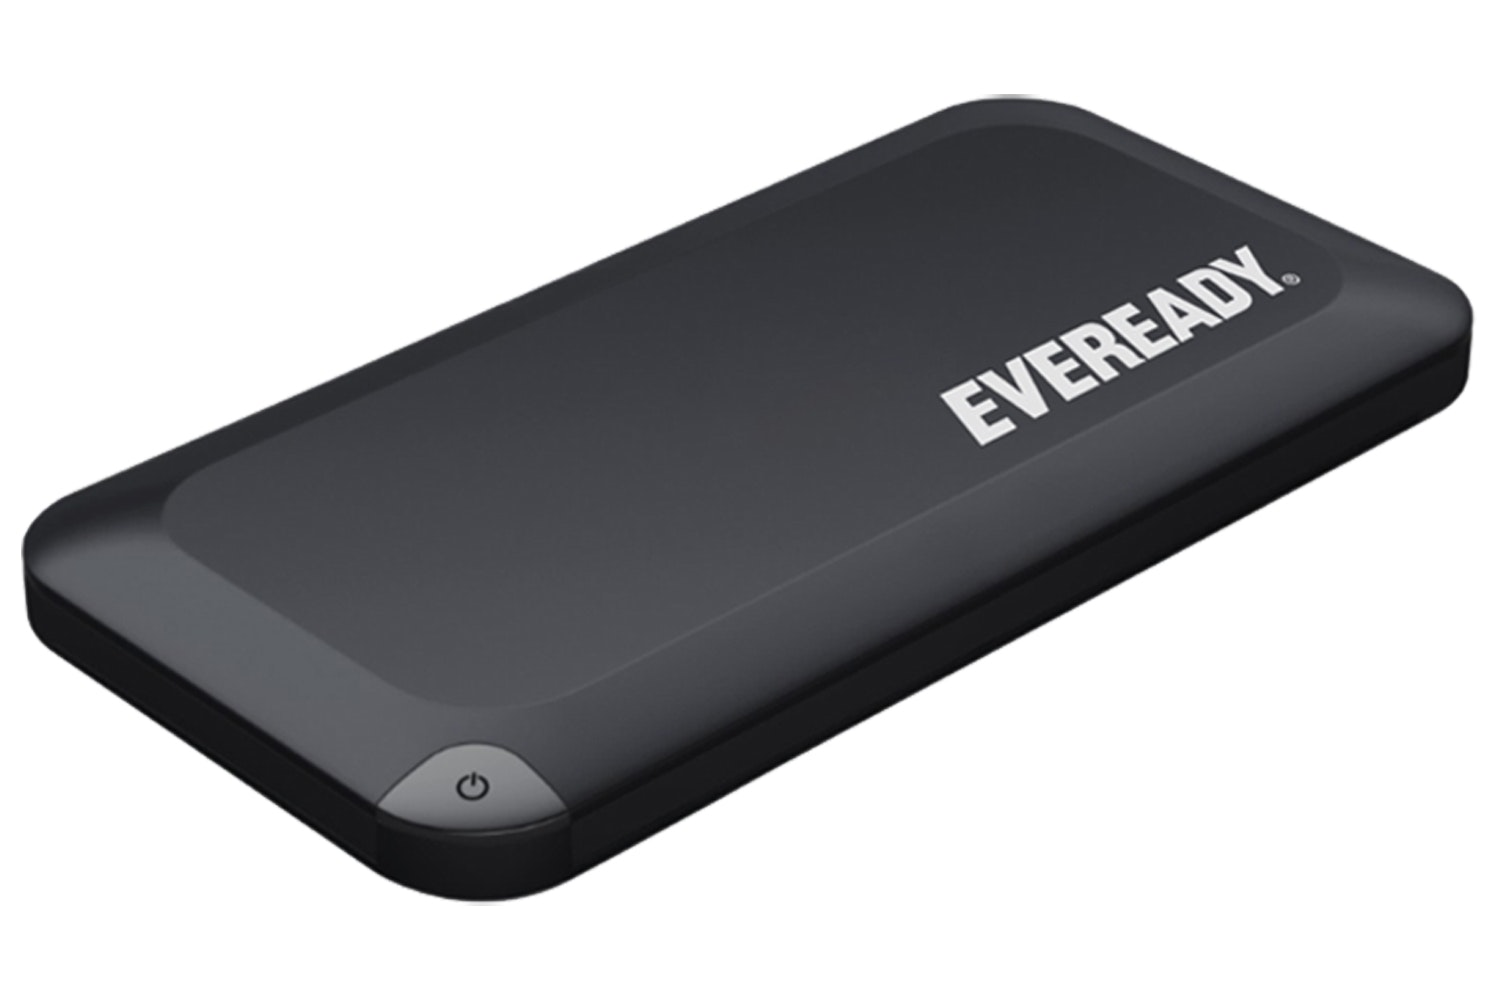 Eveready 4000mAh Power Bank | Black